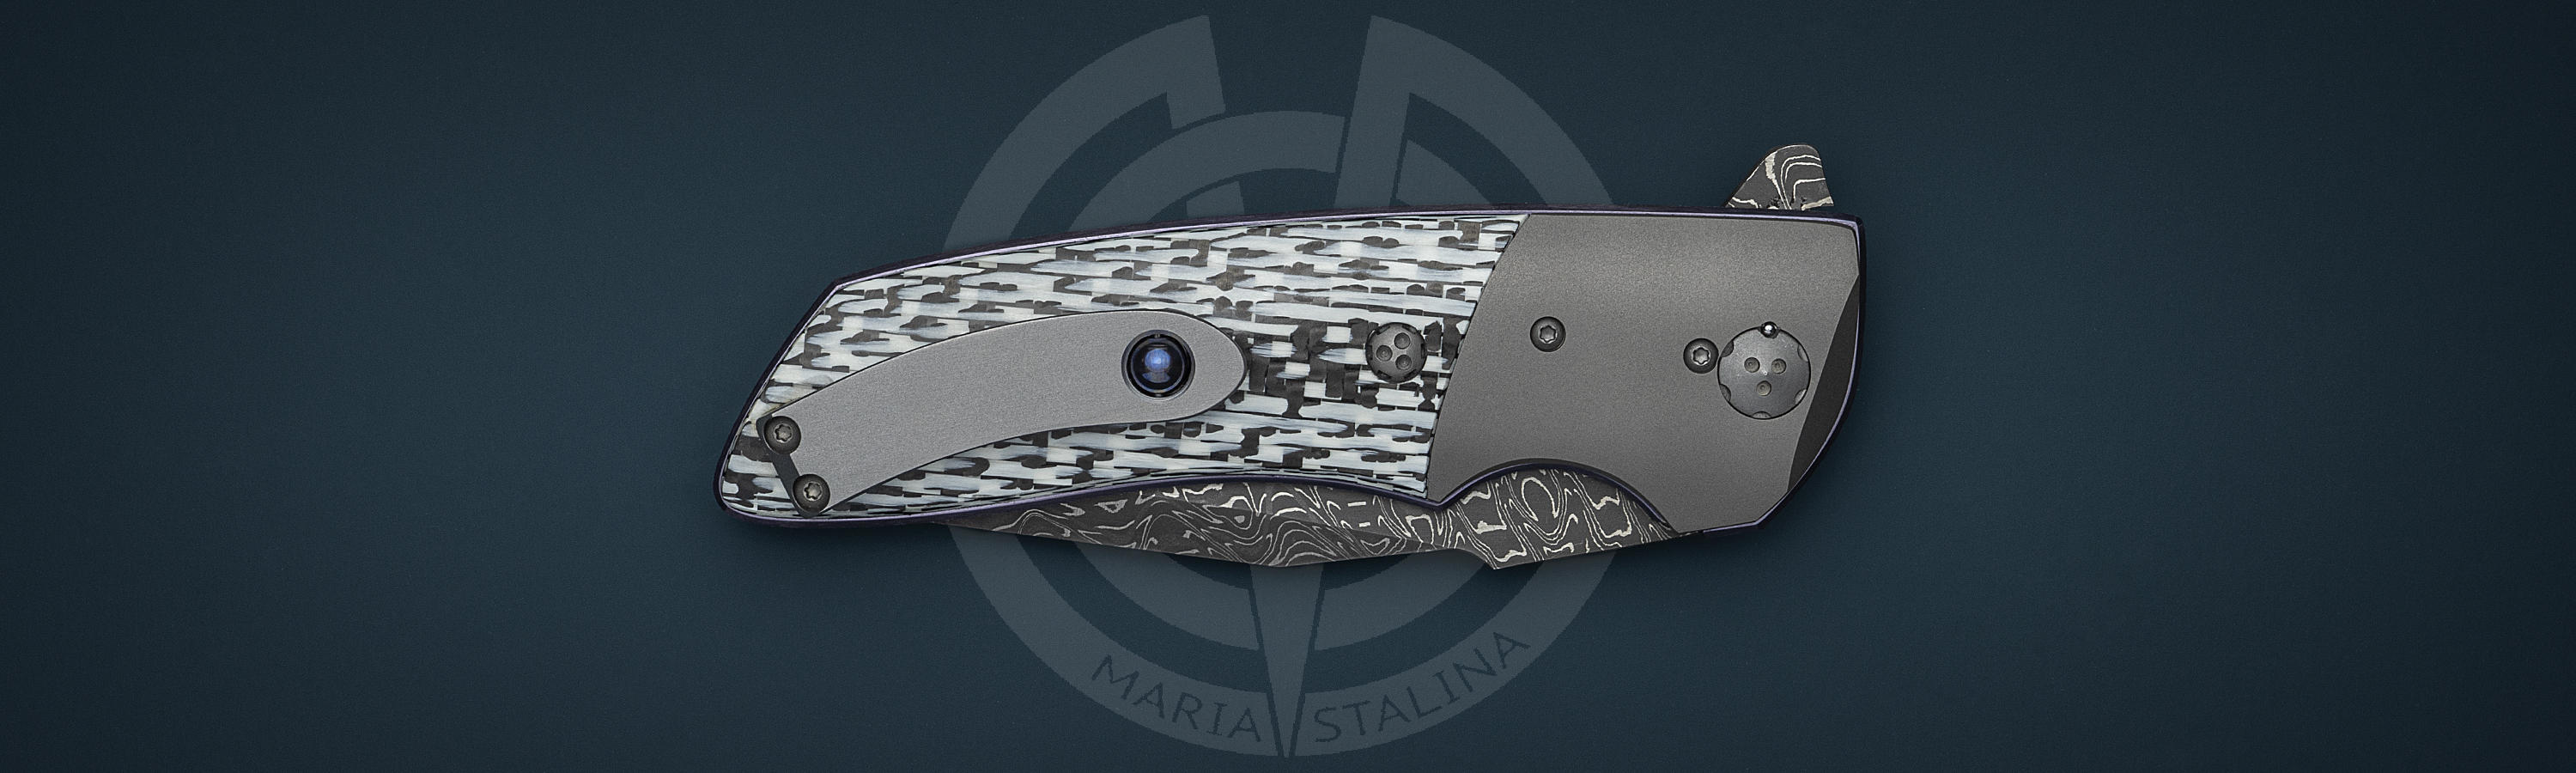 Titanium bolster and clip of knife Omega M2 by Allen Elishewitz